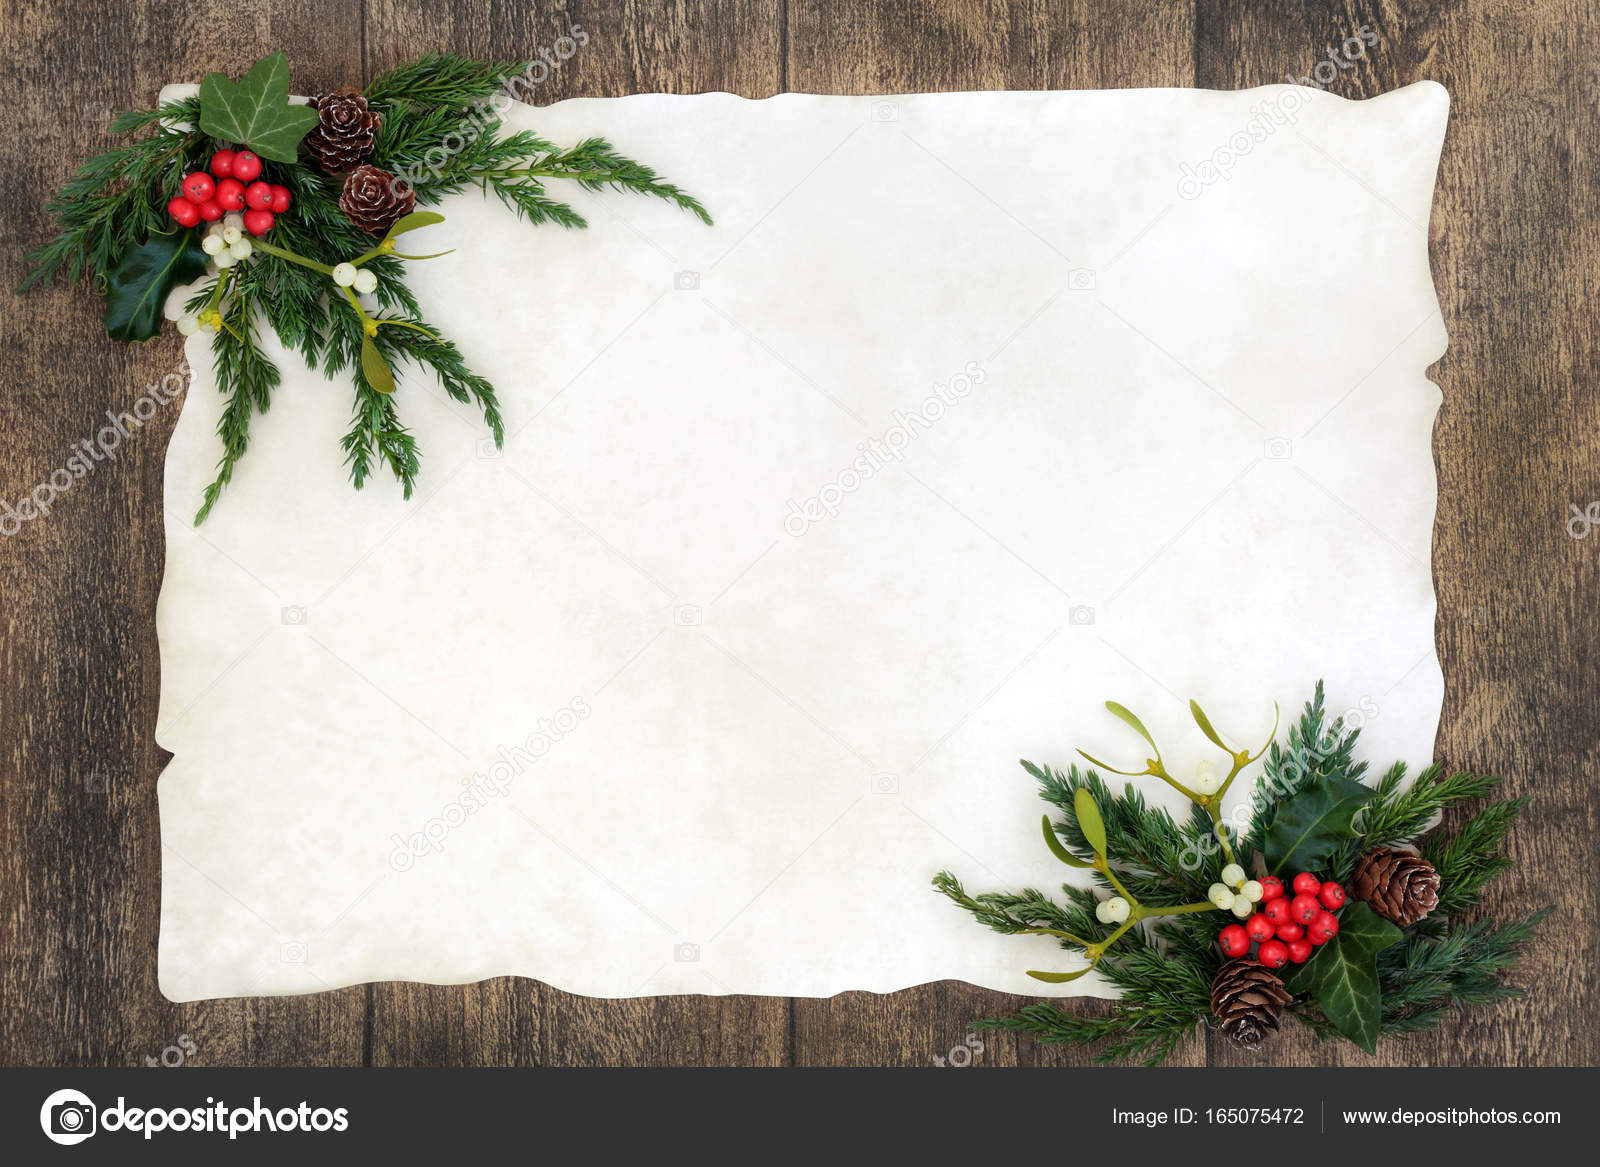 Old Fashioned Christmas Pictures.Old Fashioned Christmas Border Stock Photo C Marilyna